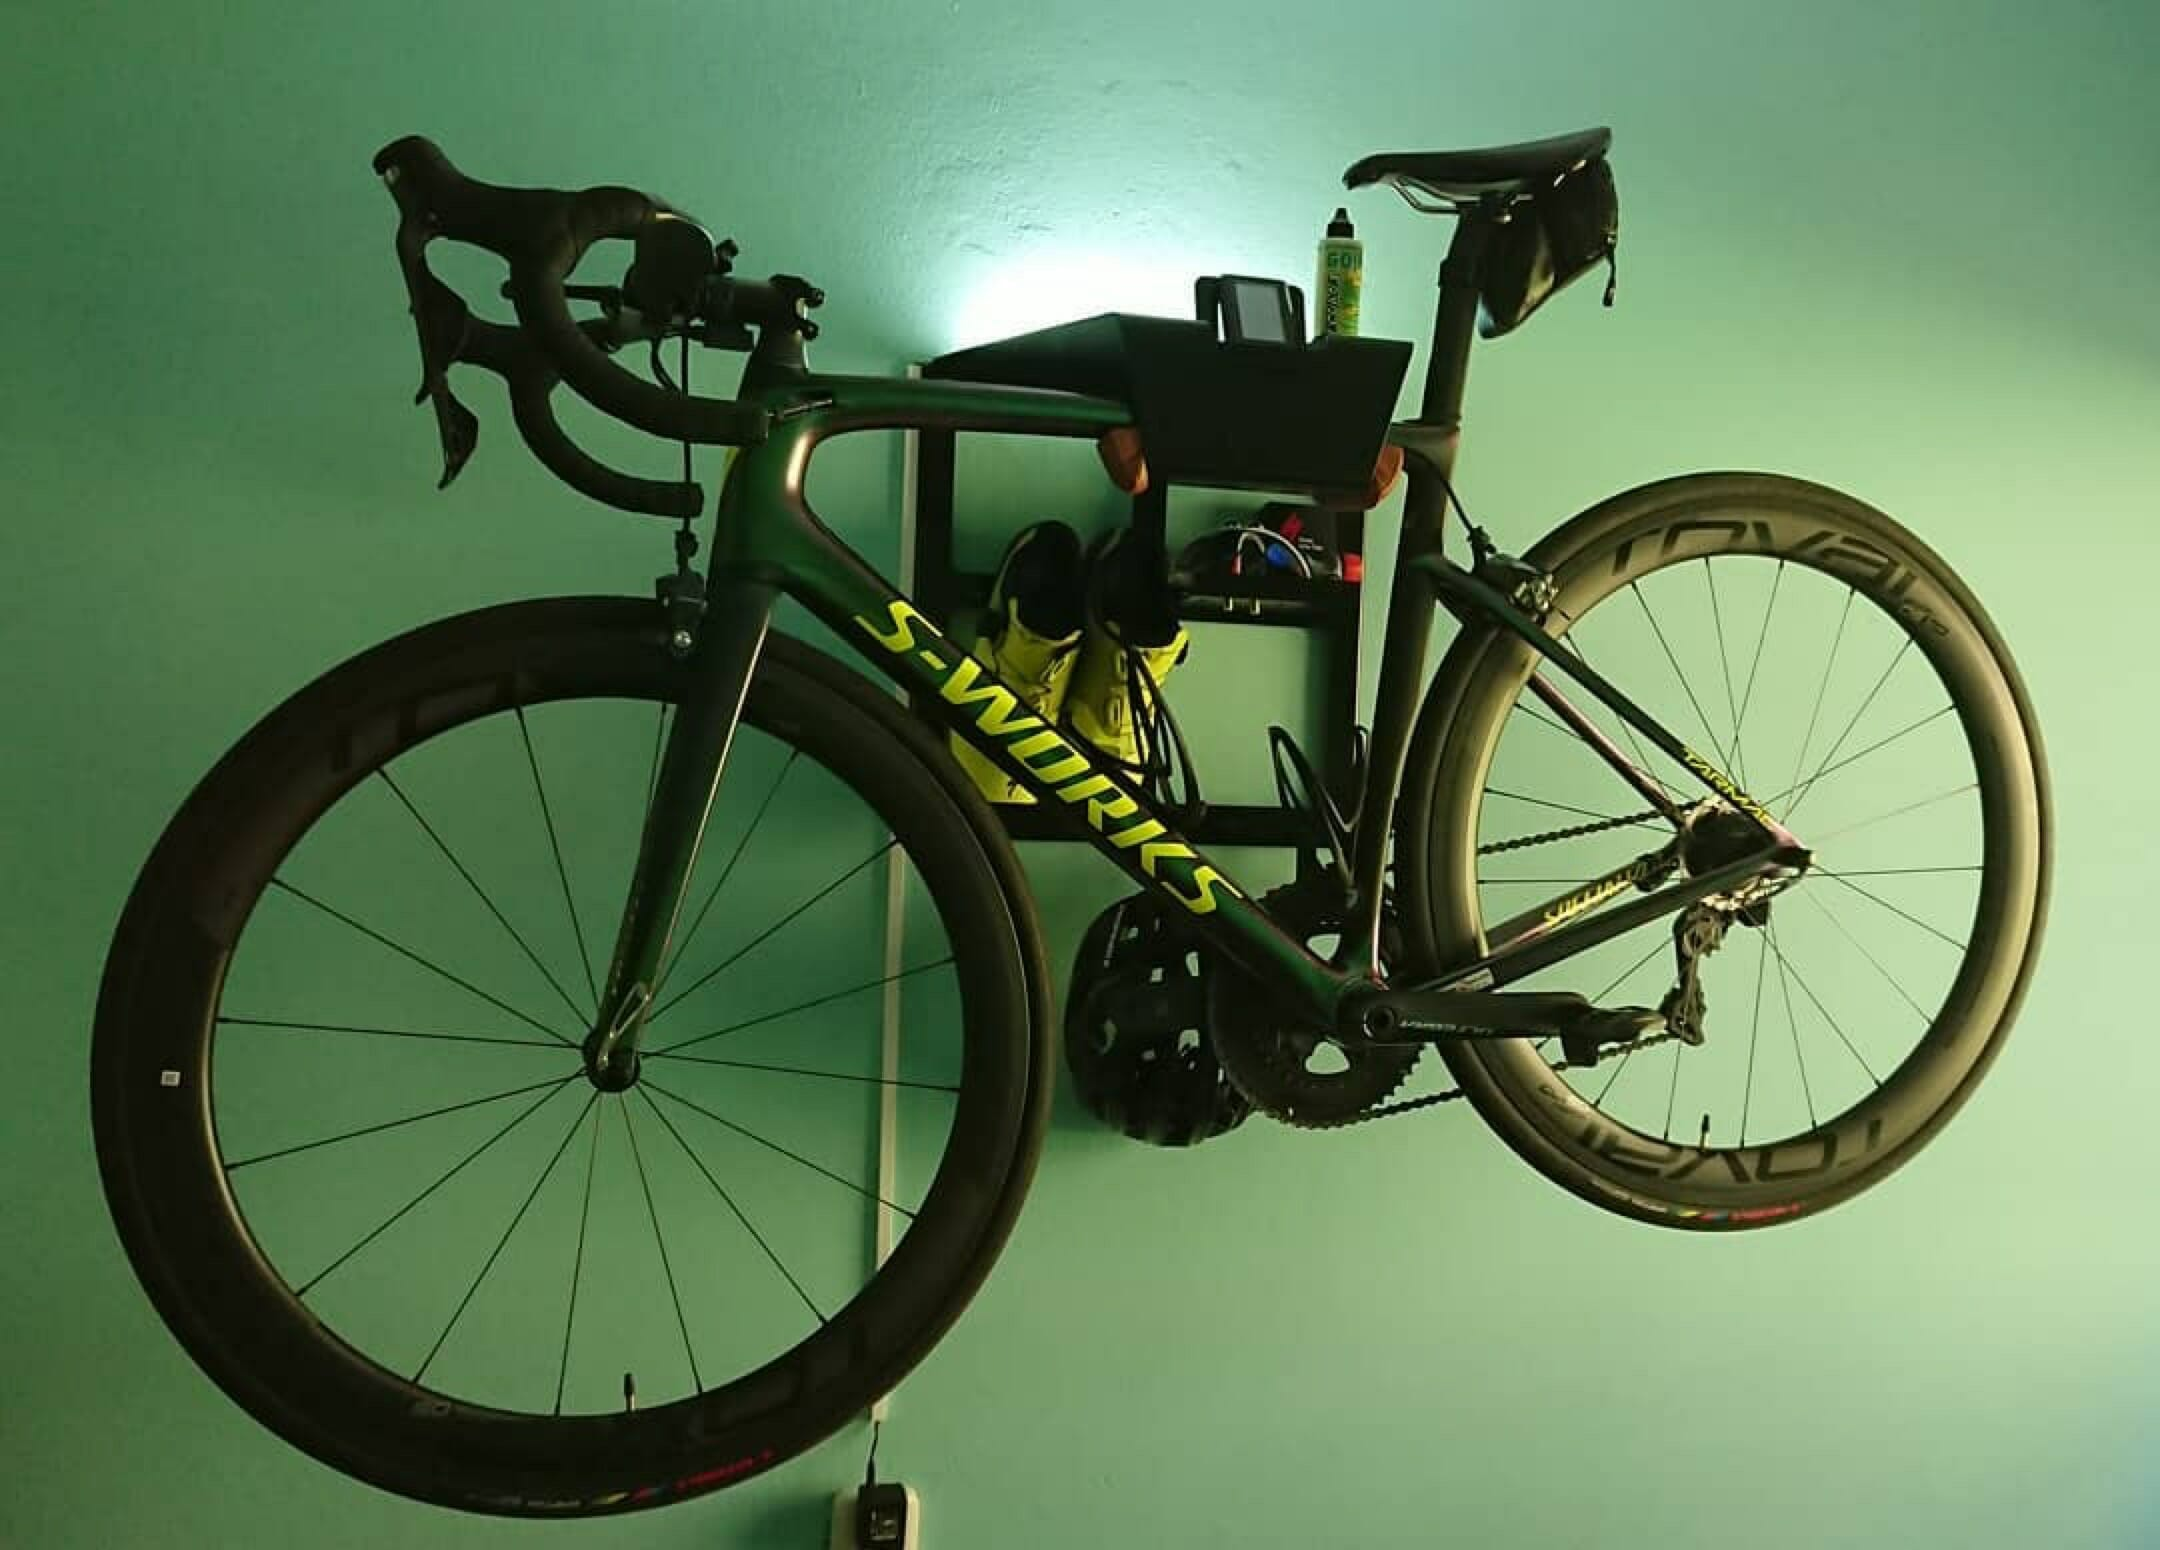 Hang up racing bike vertically black